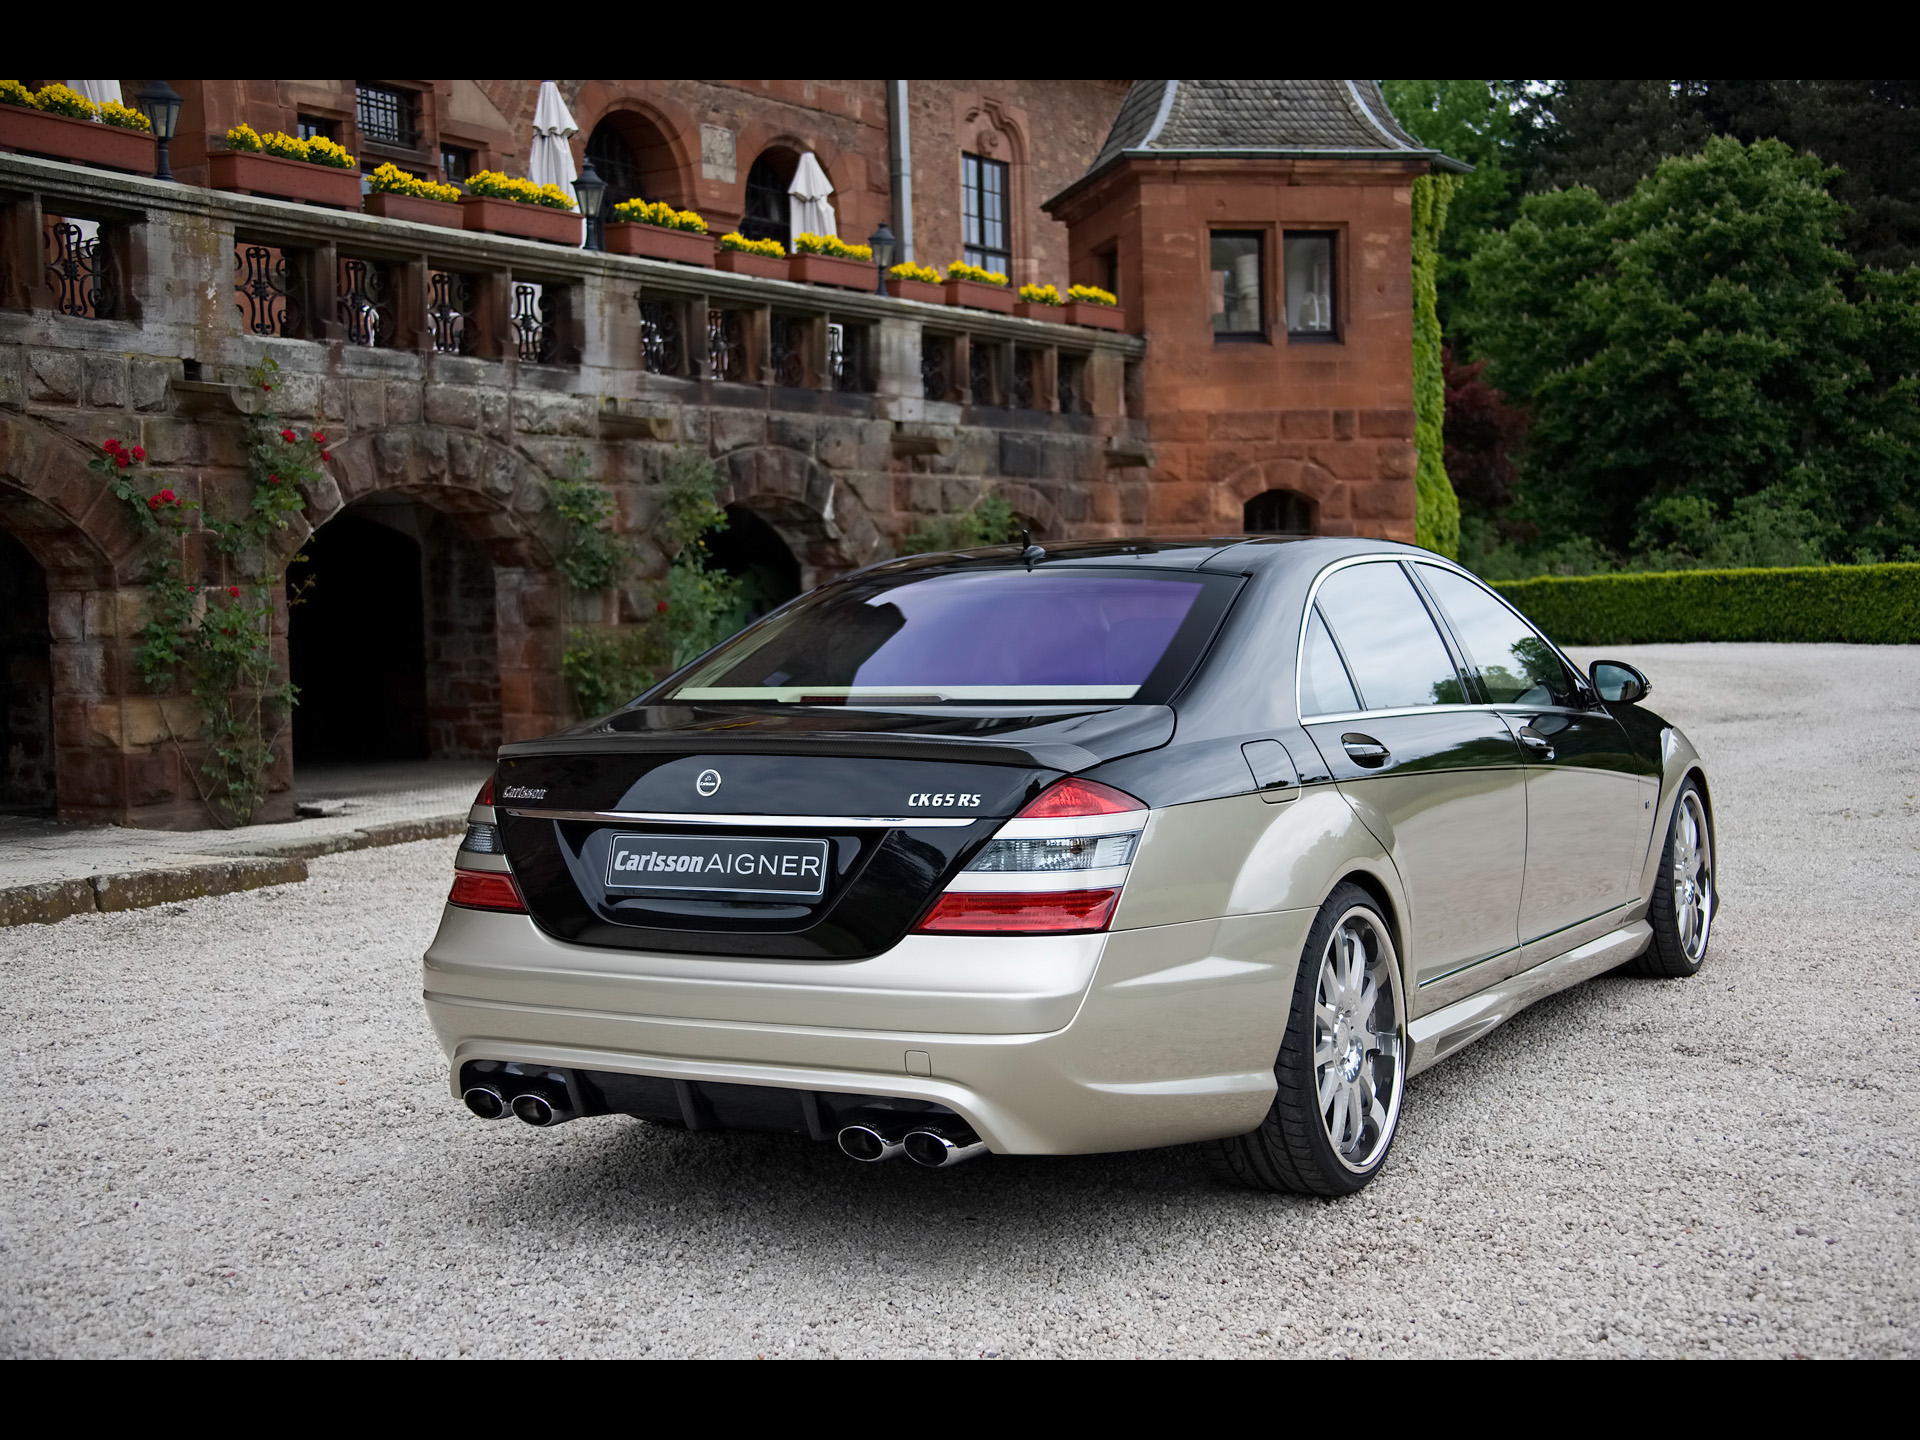 Carlsson Aigner CK65 RS Blanchimont photo 57148